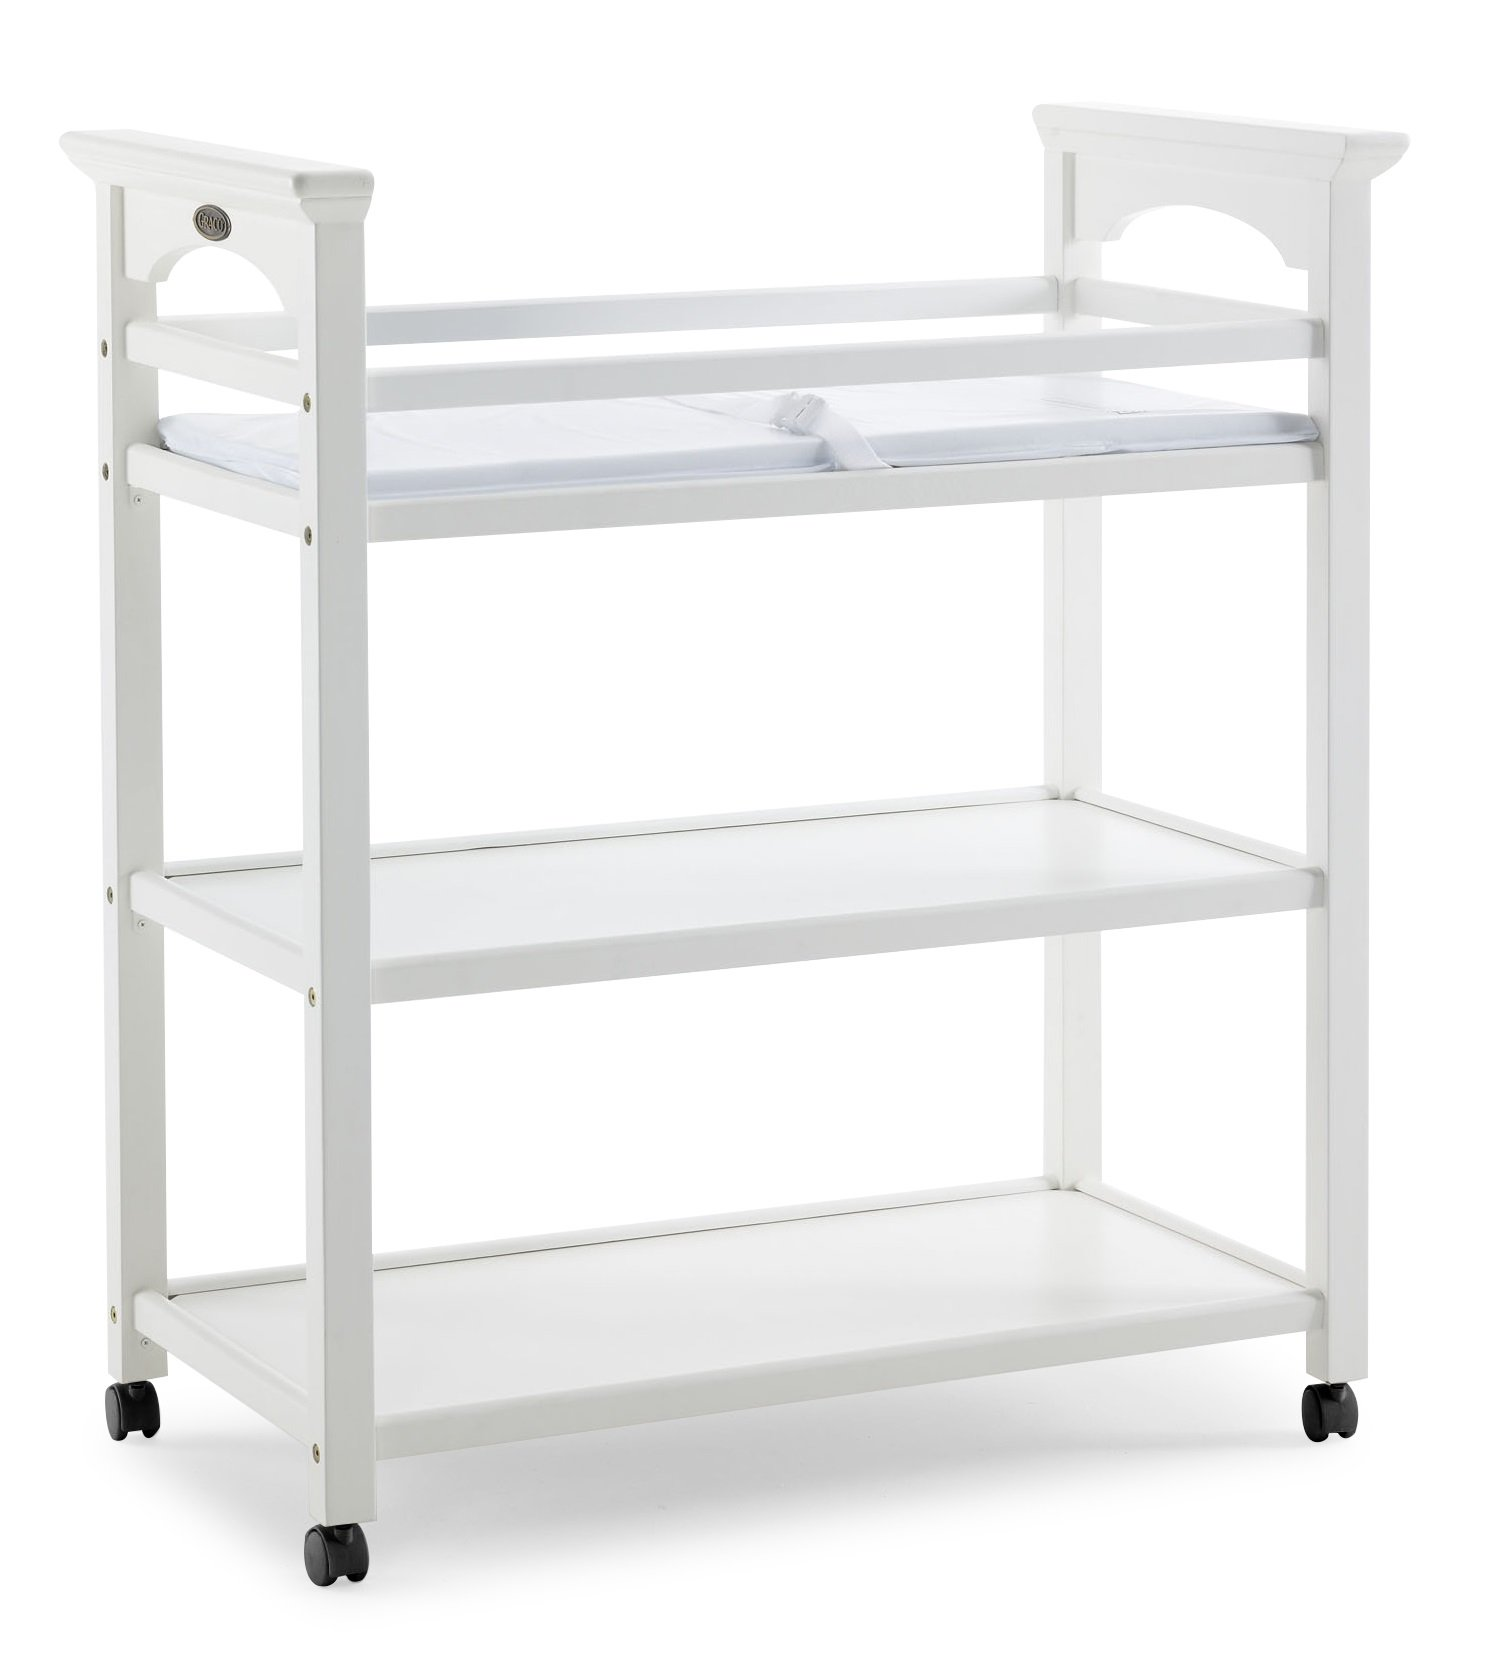 Stork Craft Graco Lauren Changing Table in White